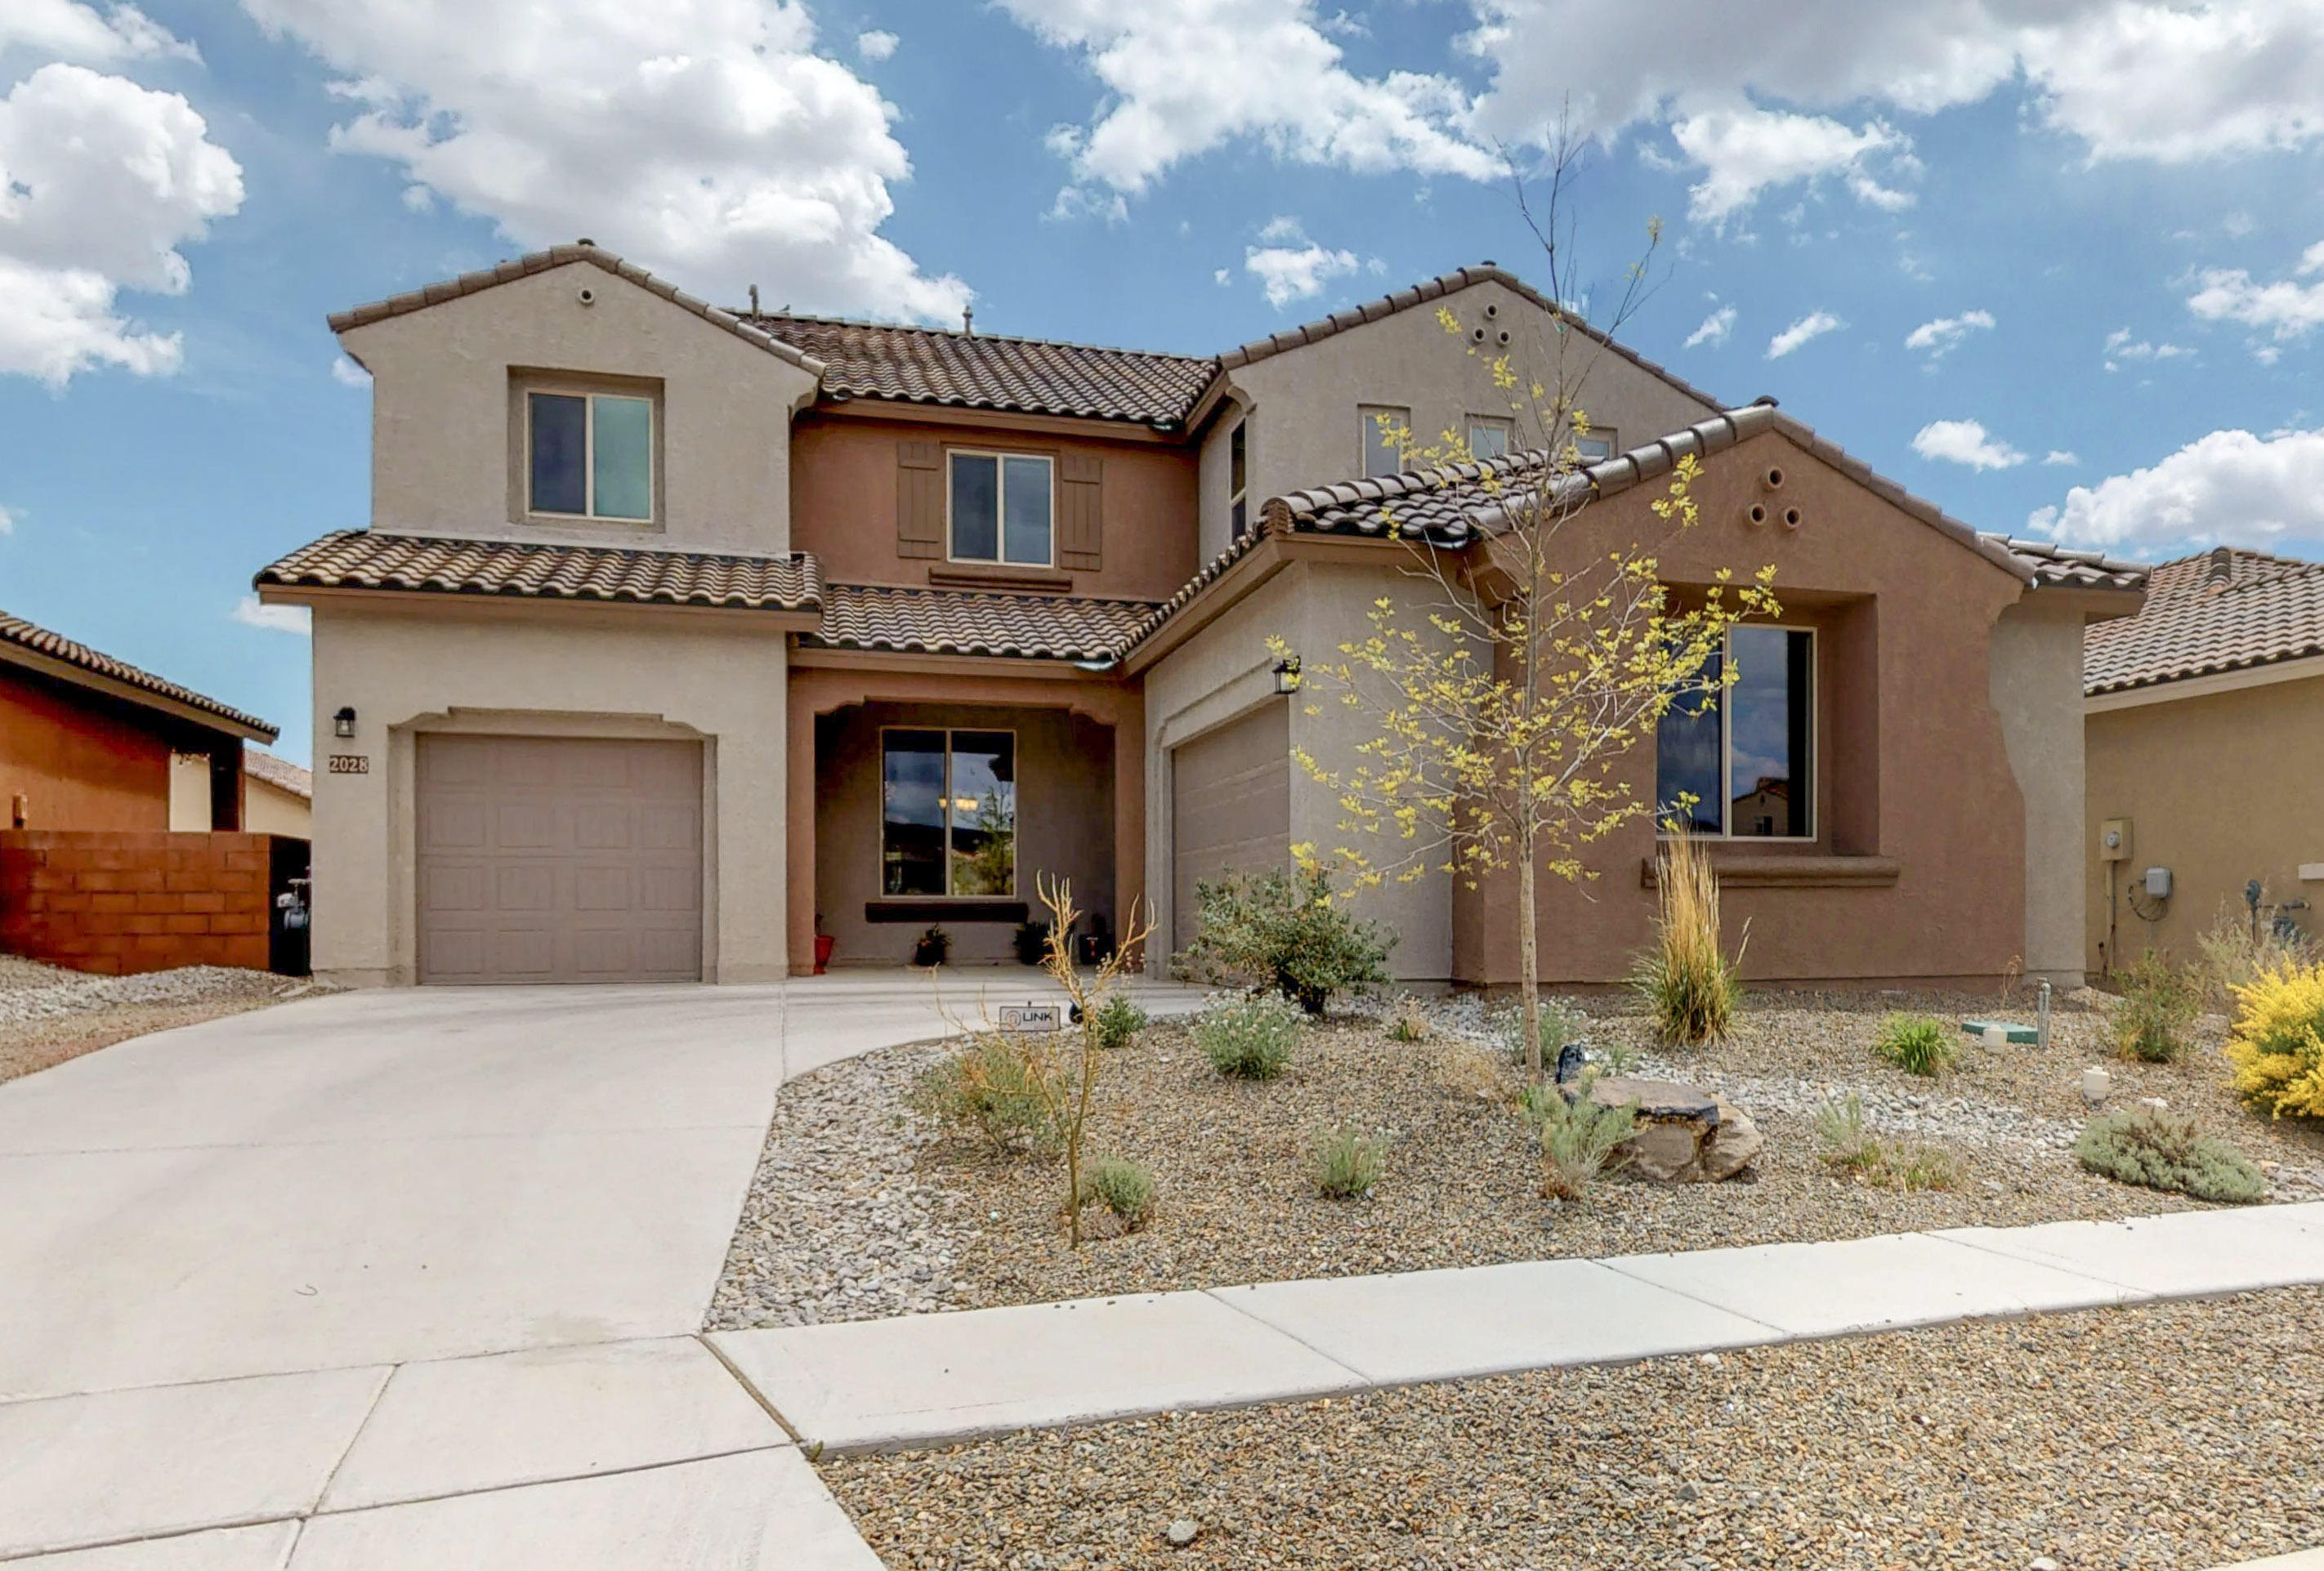 2028 NW Abo Canyon Drive, Northwest Albuquerque and Northwest Heights, New Mexico